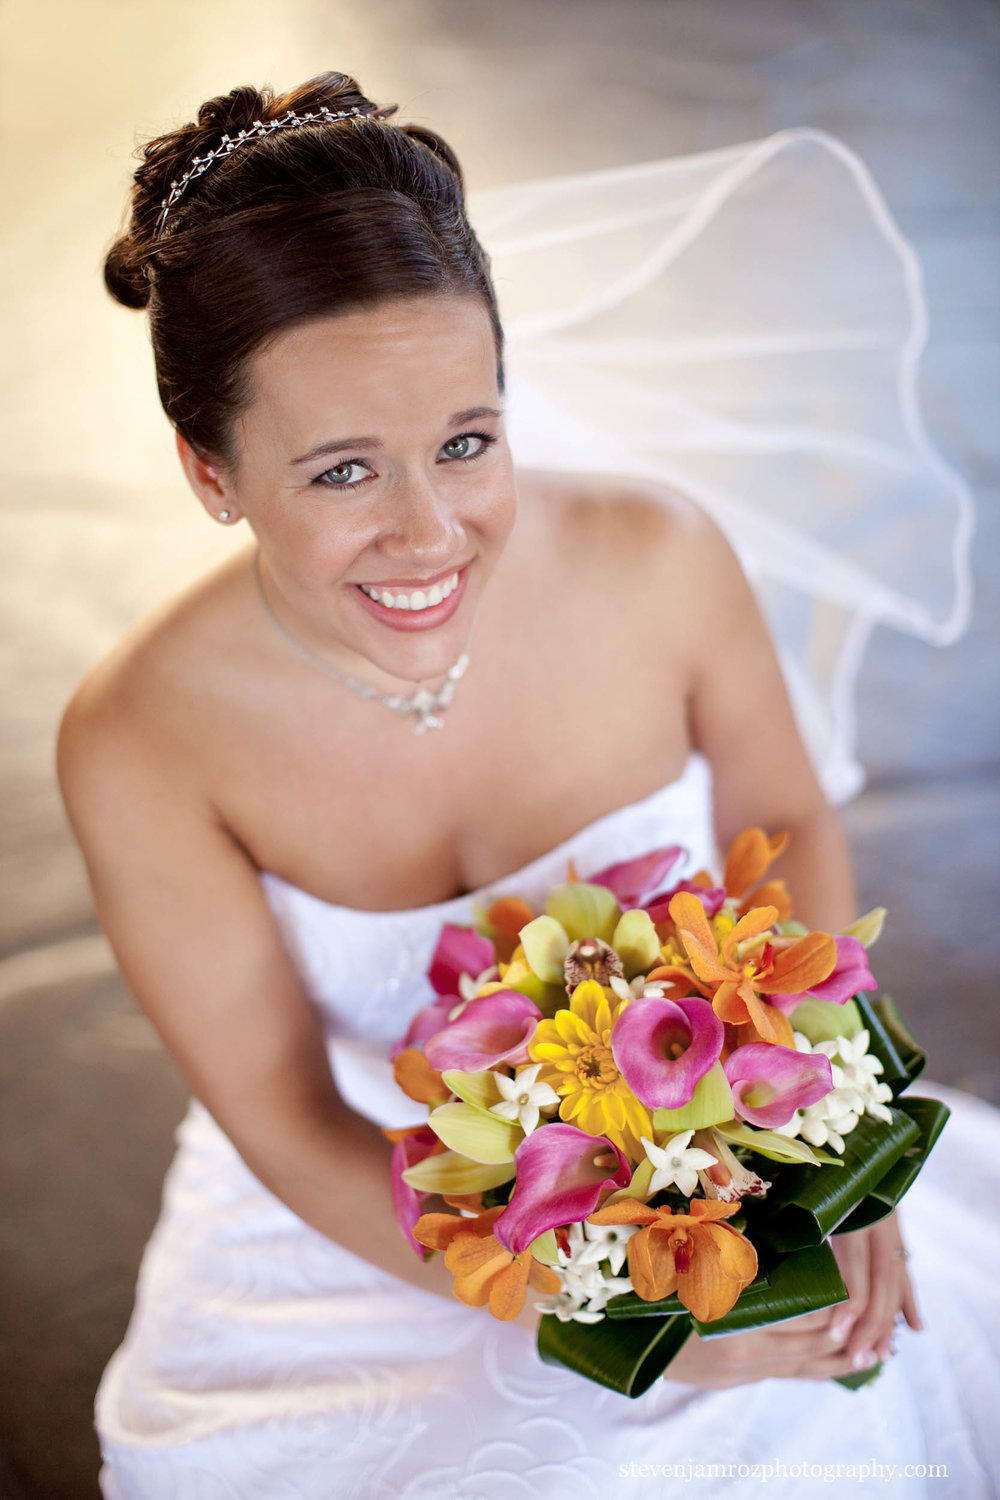 stunning-bridal-portrait-raleigh-north-carolina-photography-0927.jpg